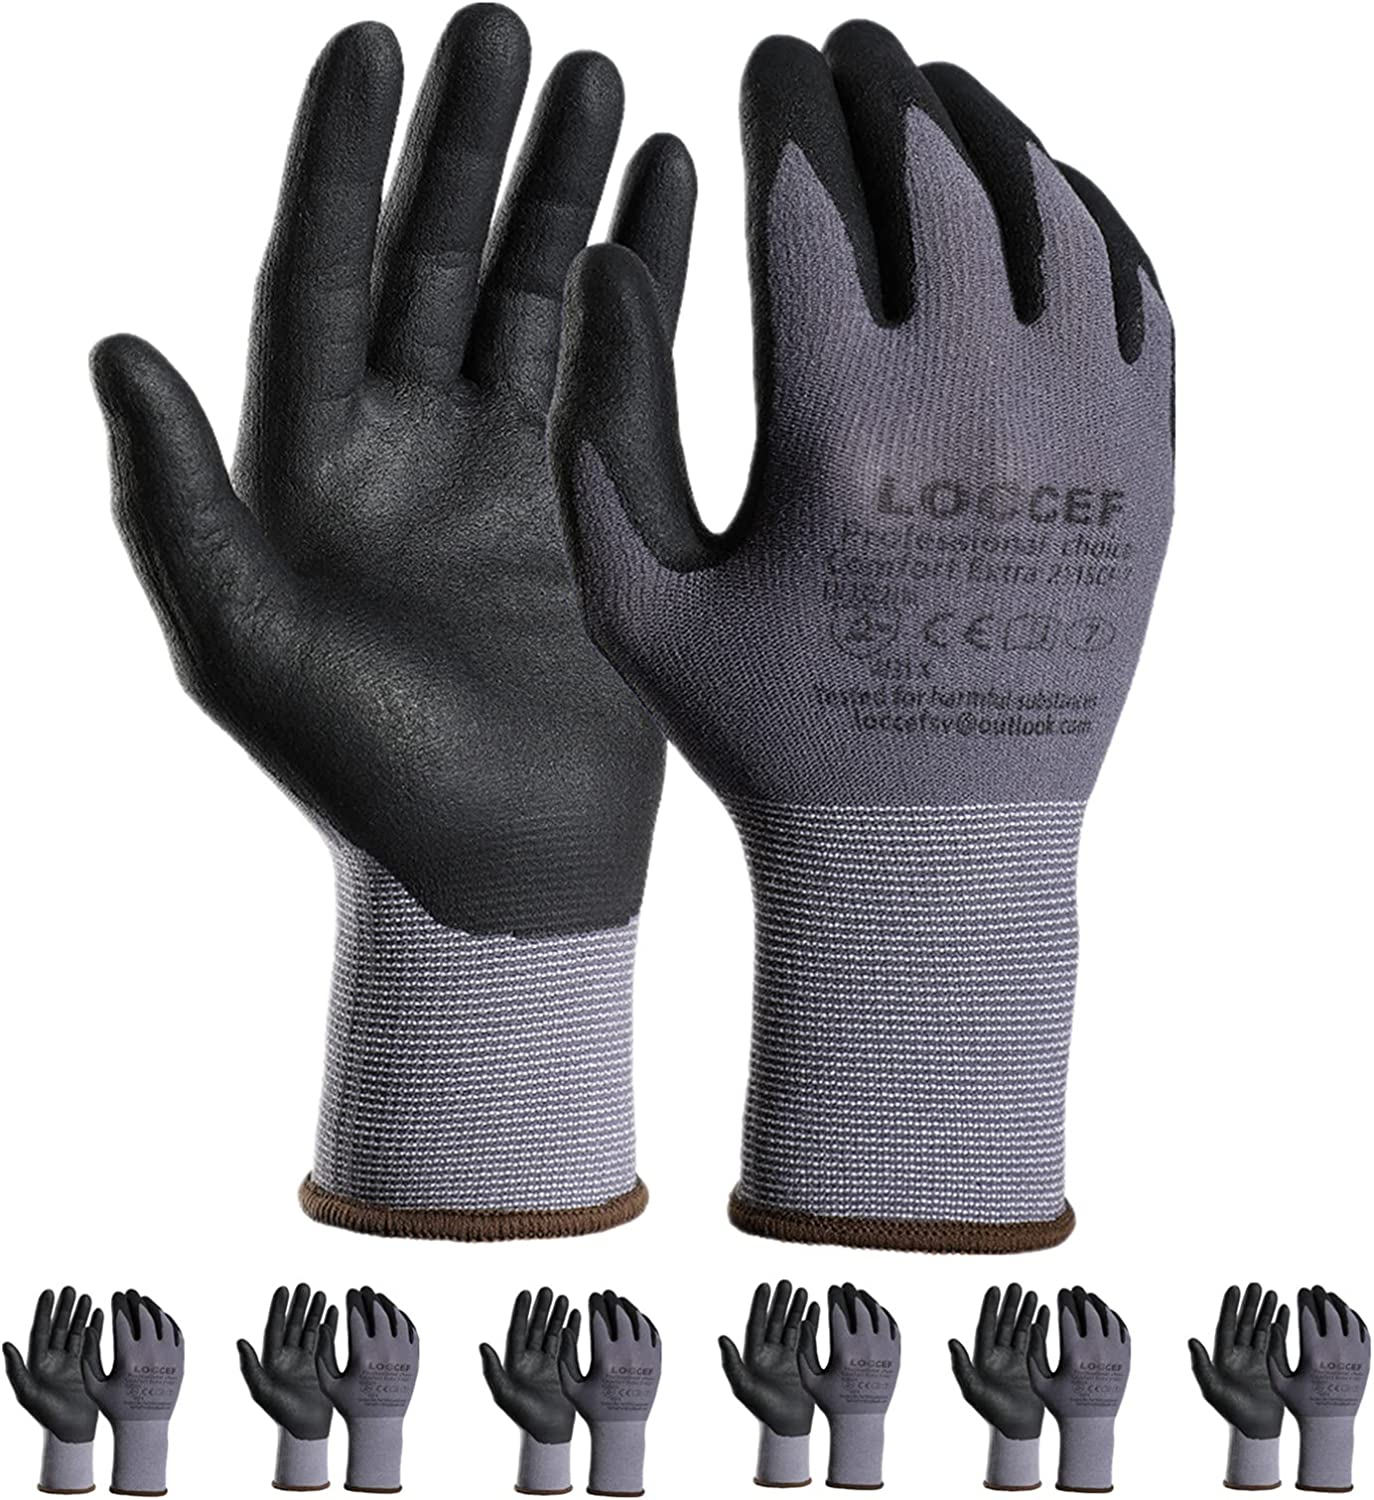 LOCCEF Safety Work Gloves MicroFoam Nitrile Coated-12 Pairs,Seamless Knit Nylon Gloves,Gray Work gloves,Home Improvement